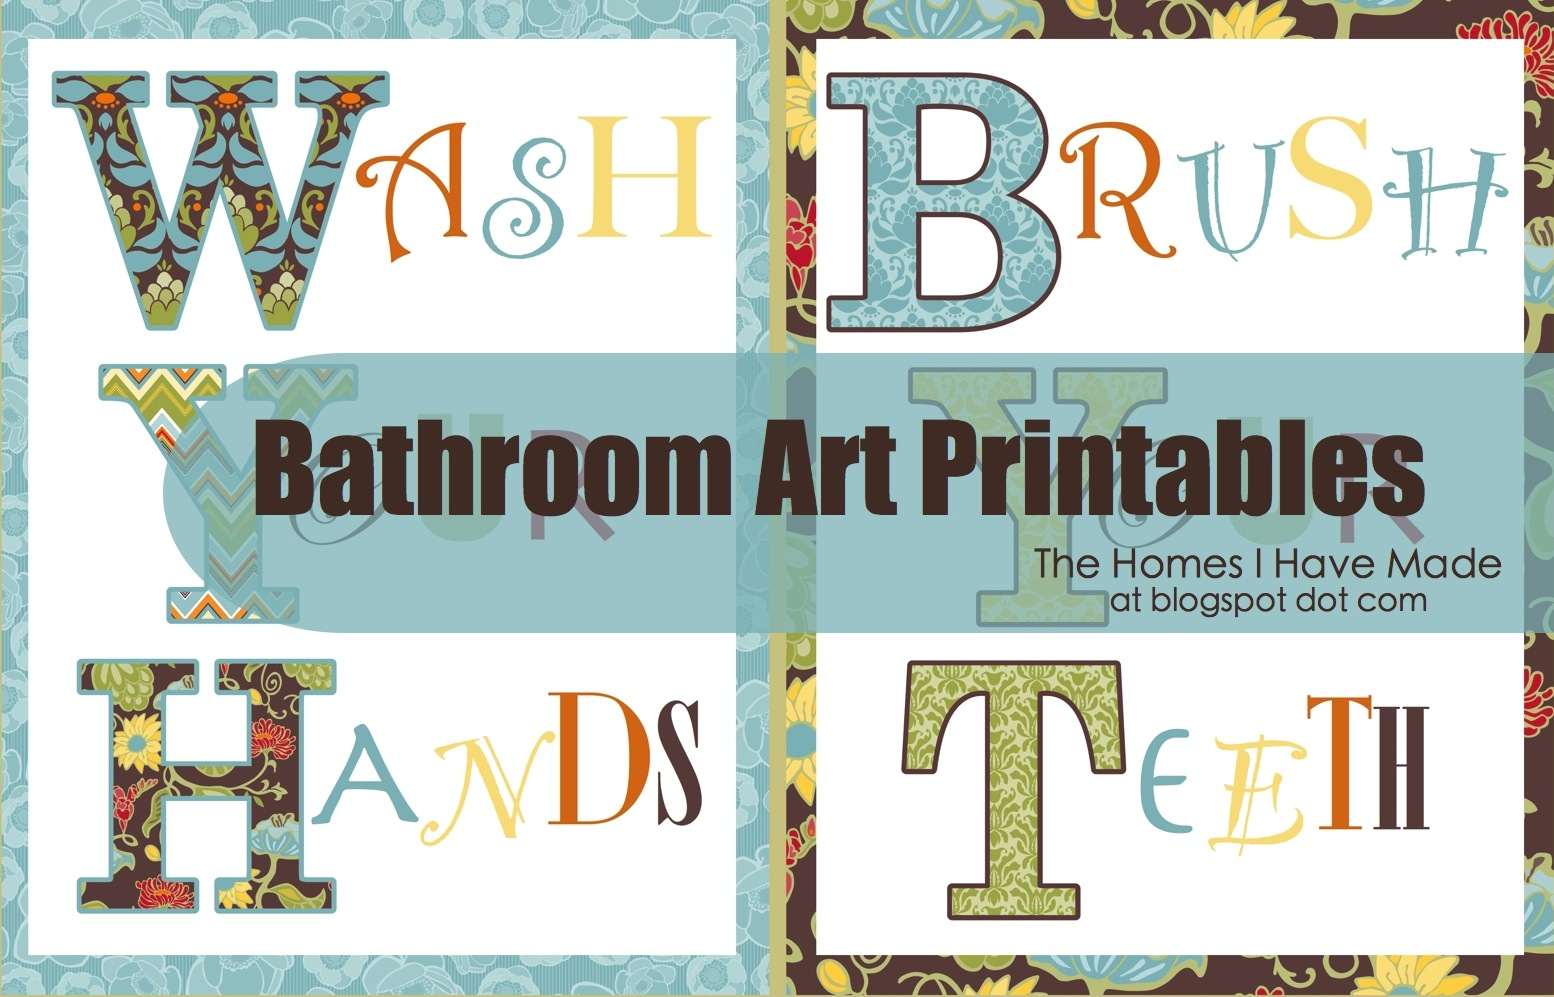 Wall Art For Bathrooms bathroom wall art printables | the homes i have made